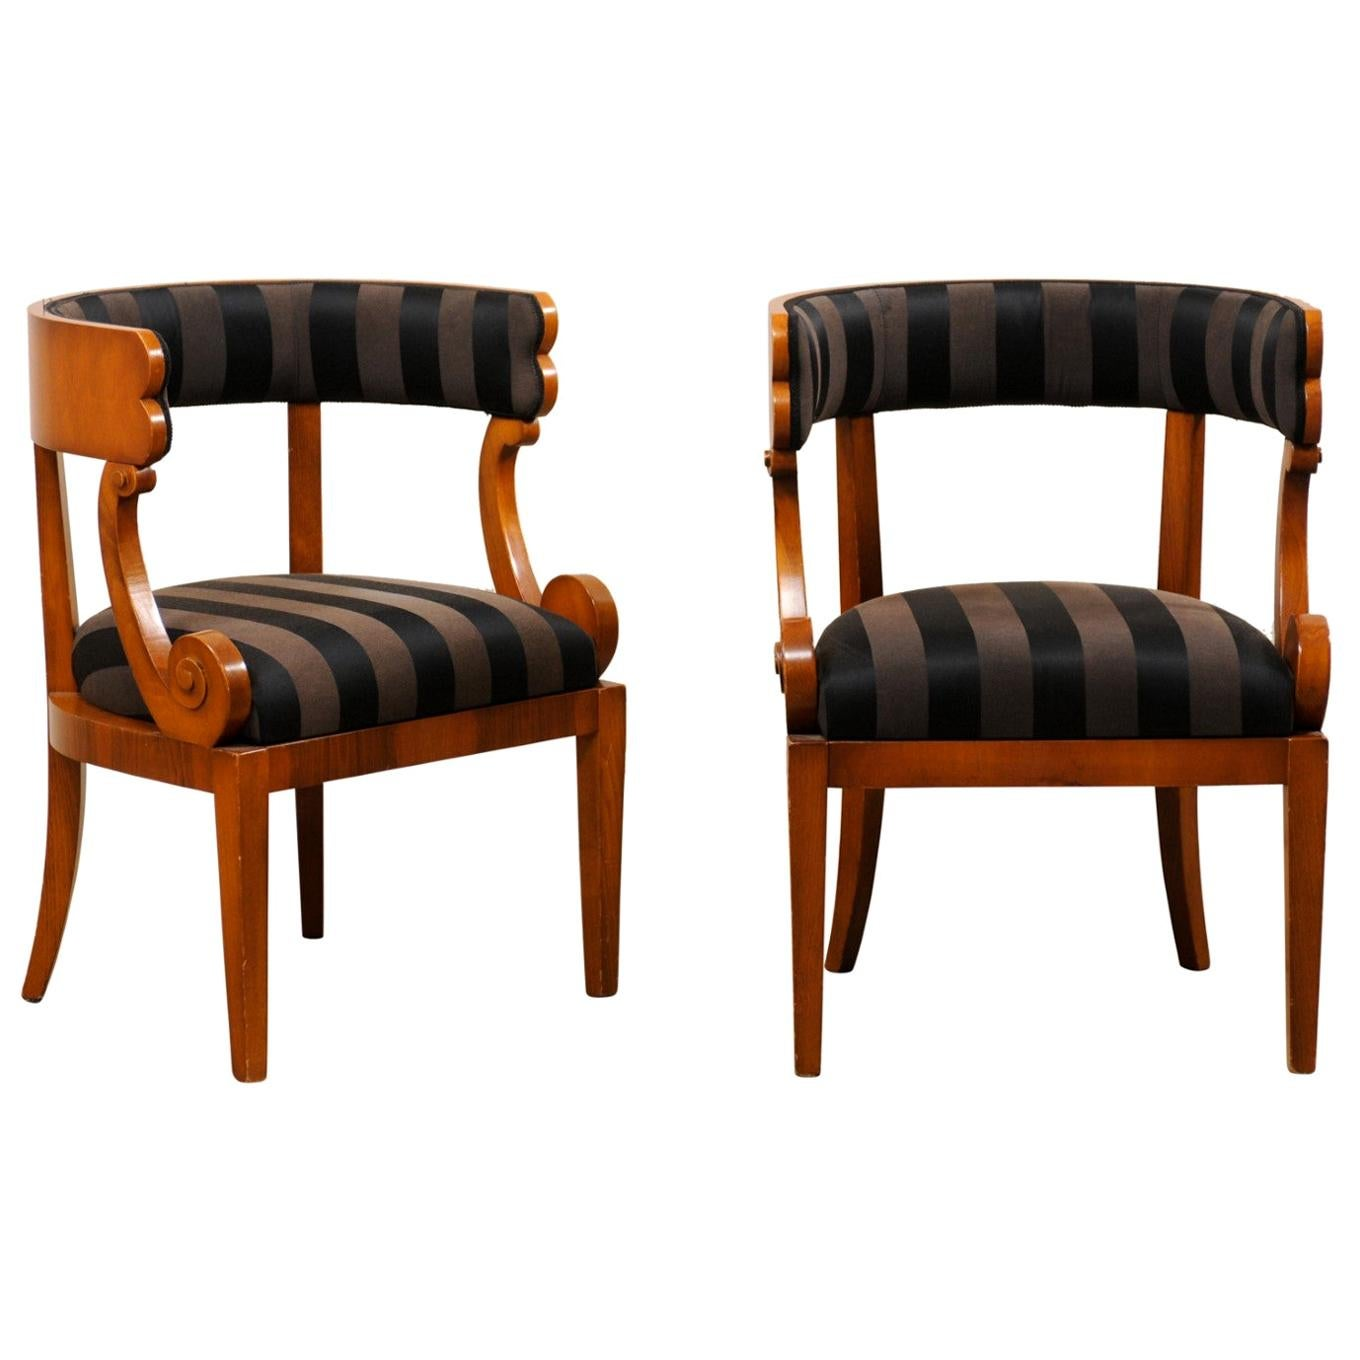 Italian Pair of Barrel Back Chairs with Beautiful Volute-Carved Arm Supports